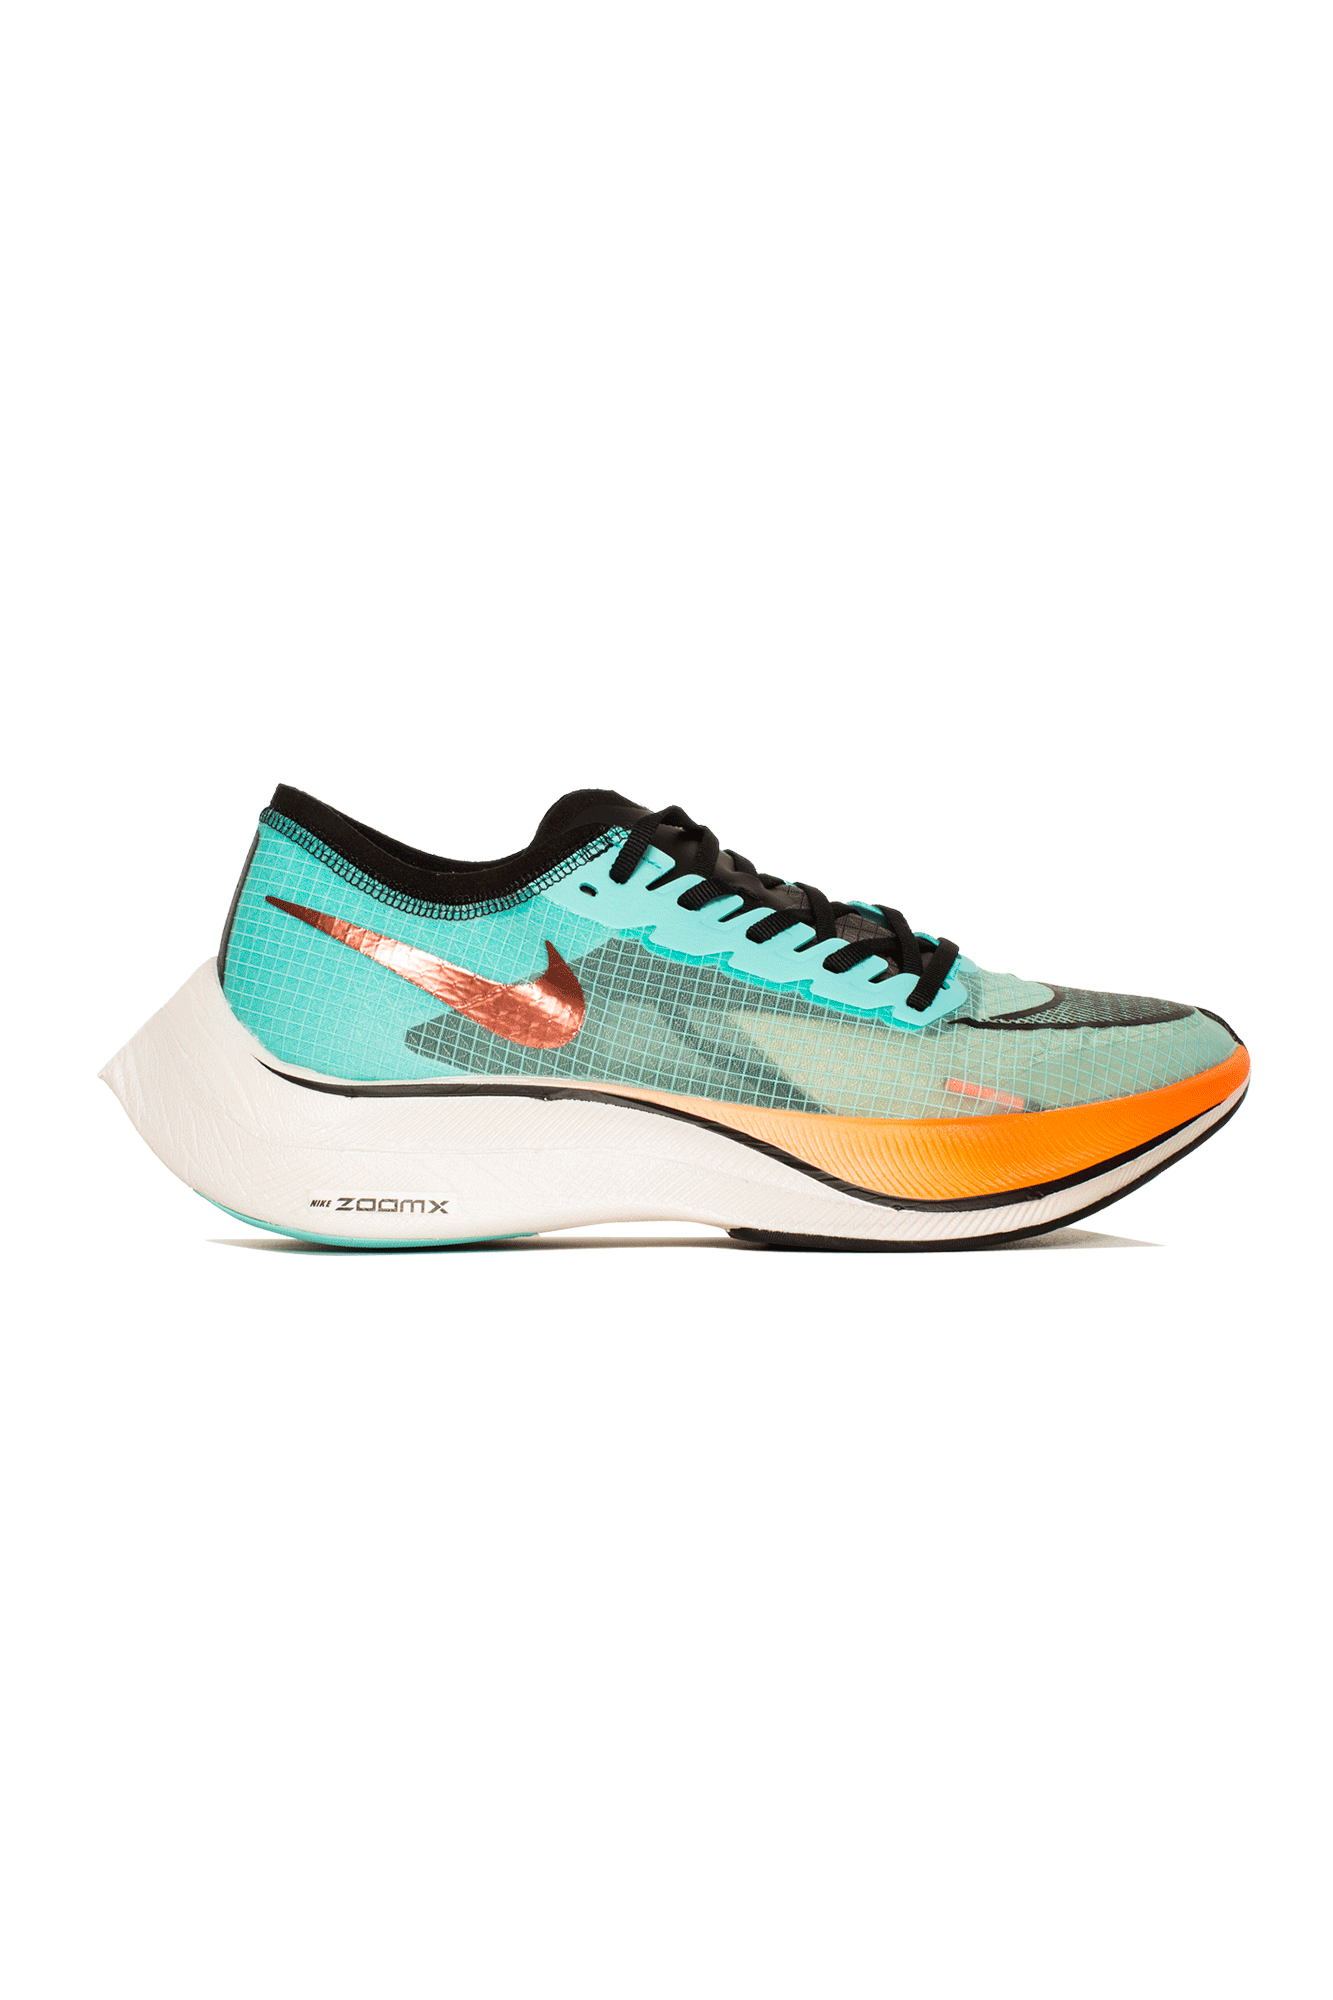 Nike Sneakers Zoomx Vaporfly Next% Hkne Red CD4553-#000#300#7 - One Block Down